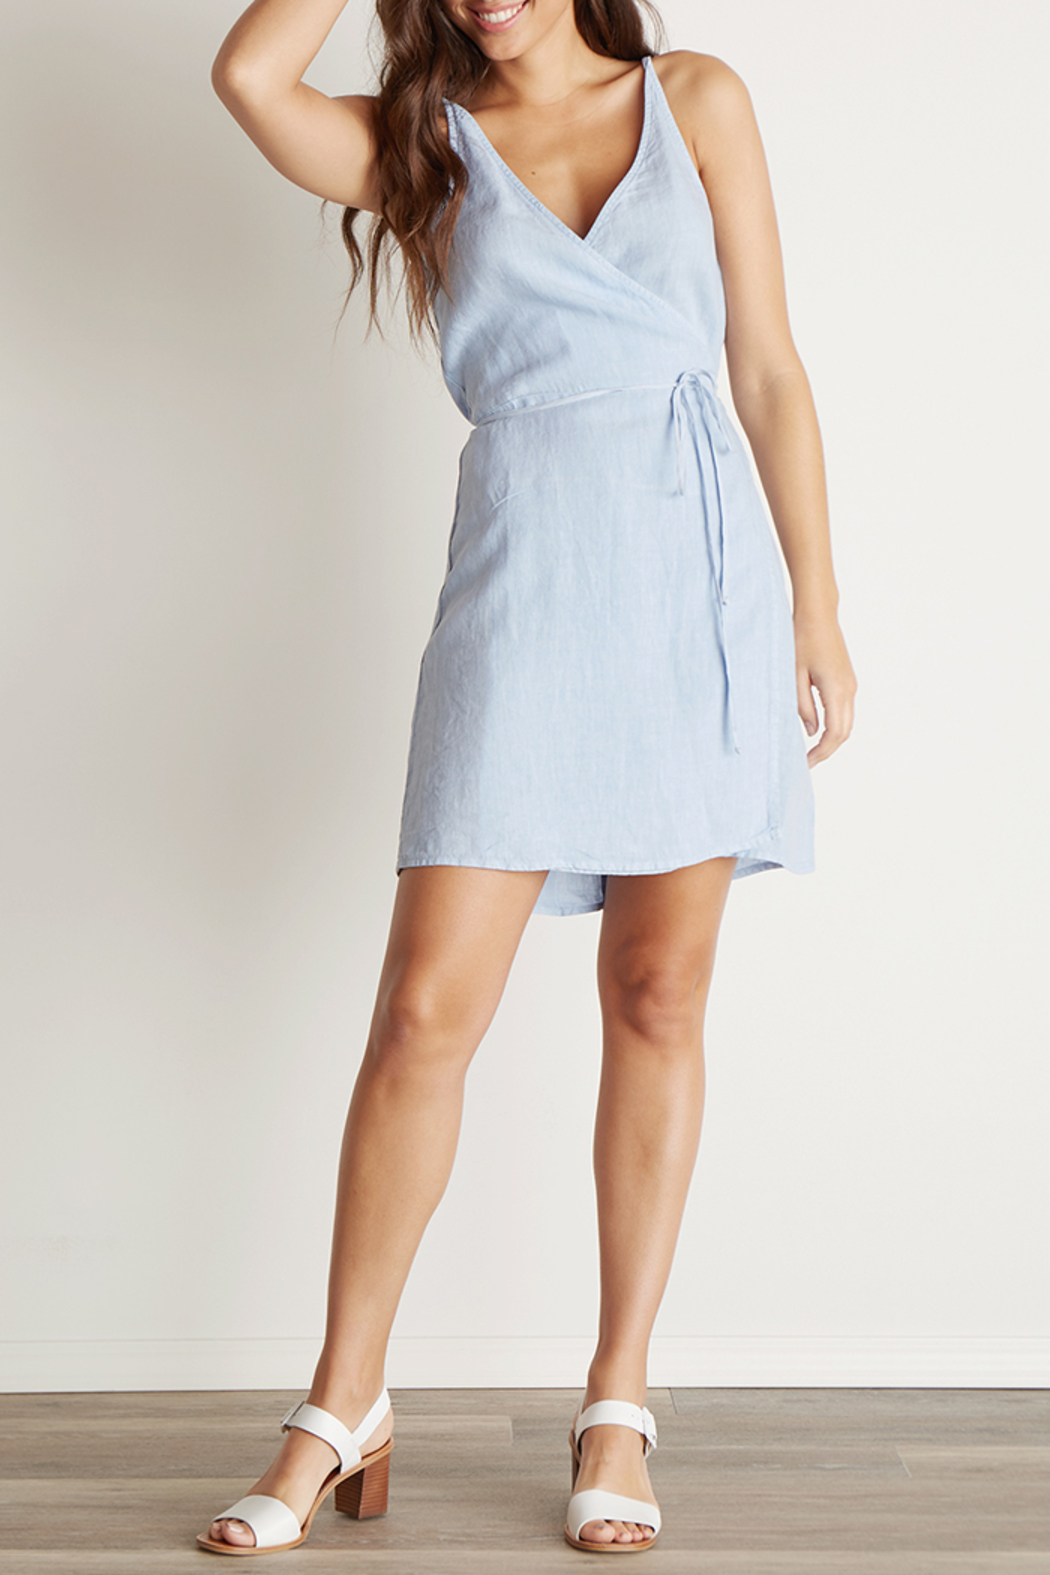 Bella Dahl V-BACK WRAP DRESS - Main Image